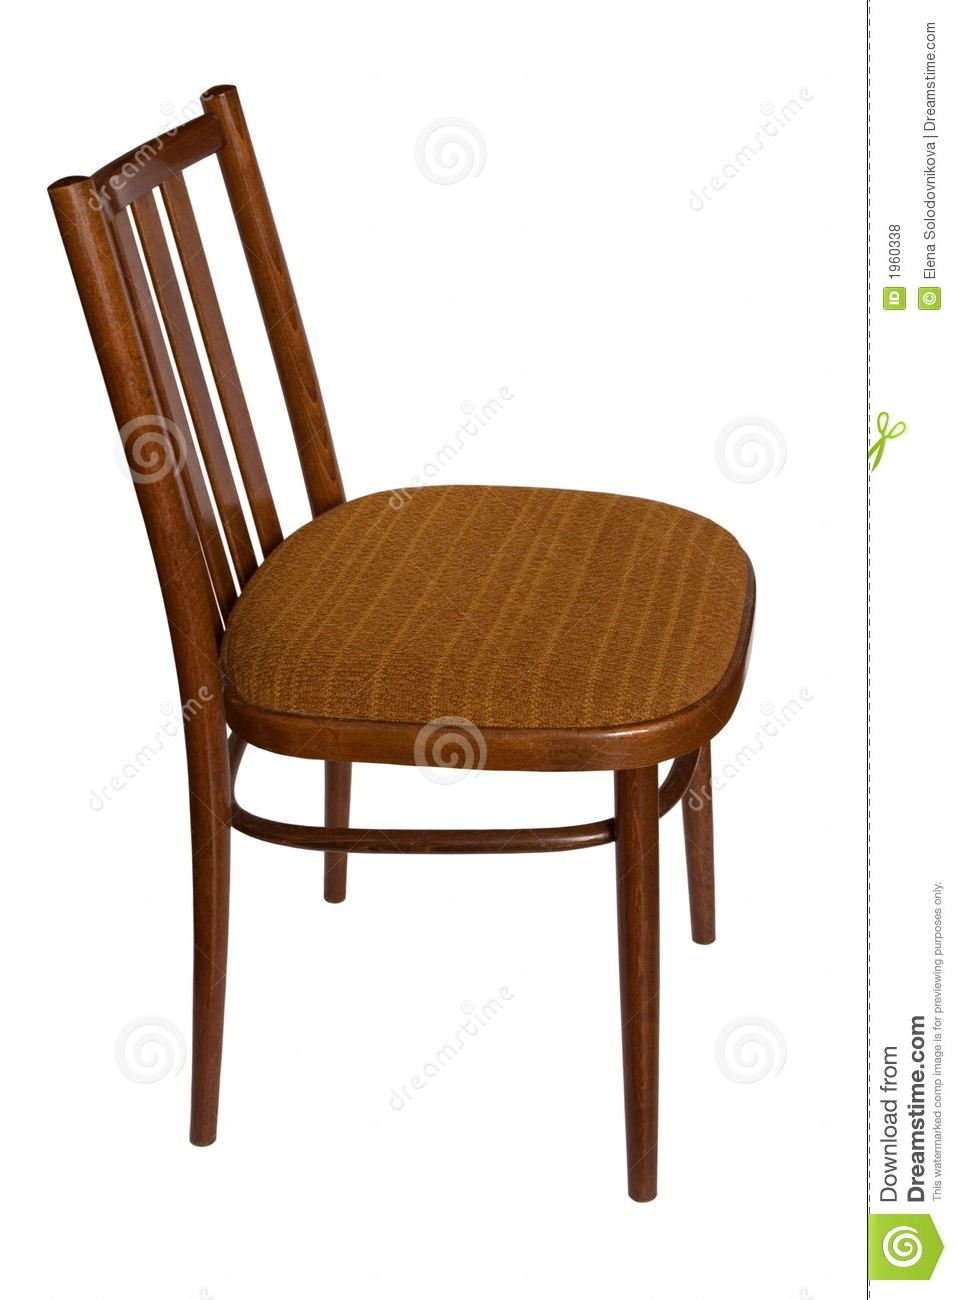 Ordinary Chair Side View  Royalty Free Stock Photos   Image  1960338